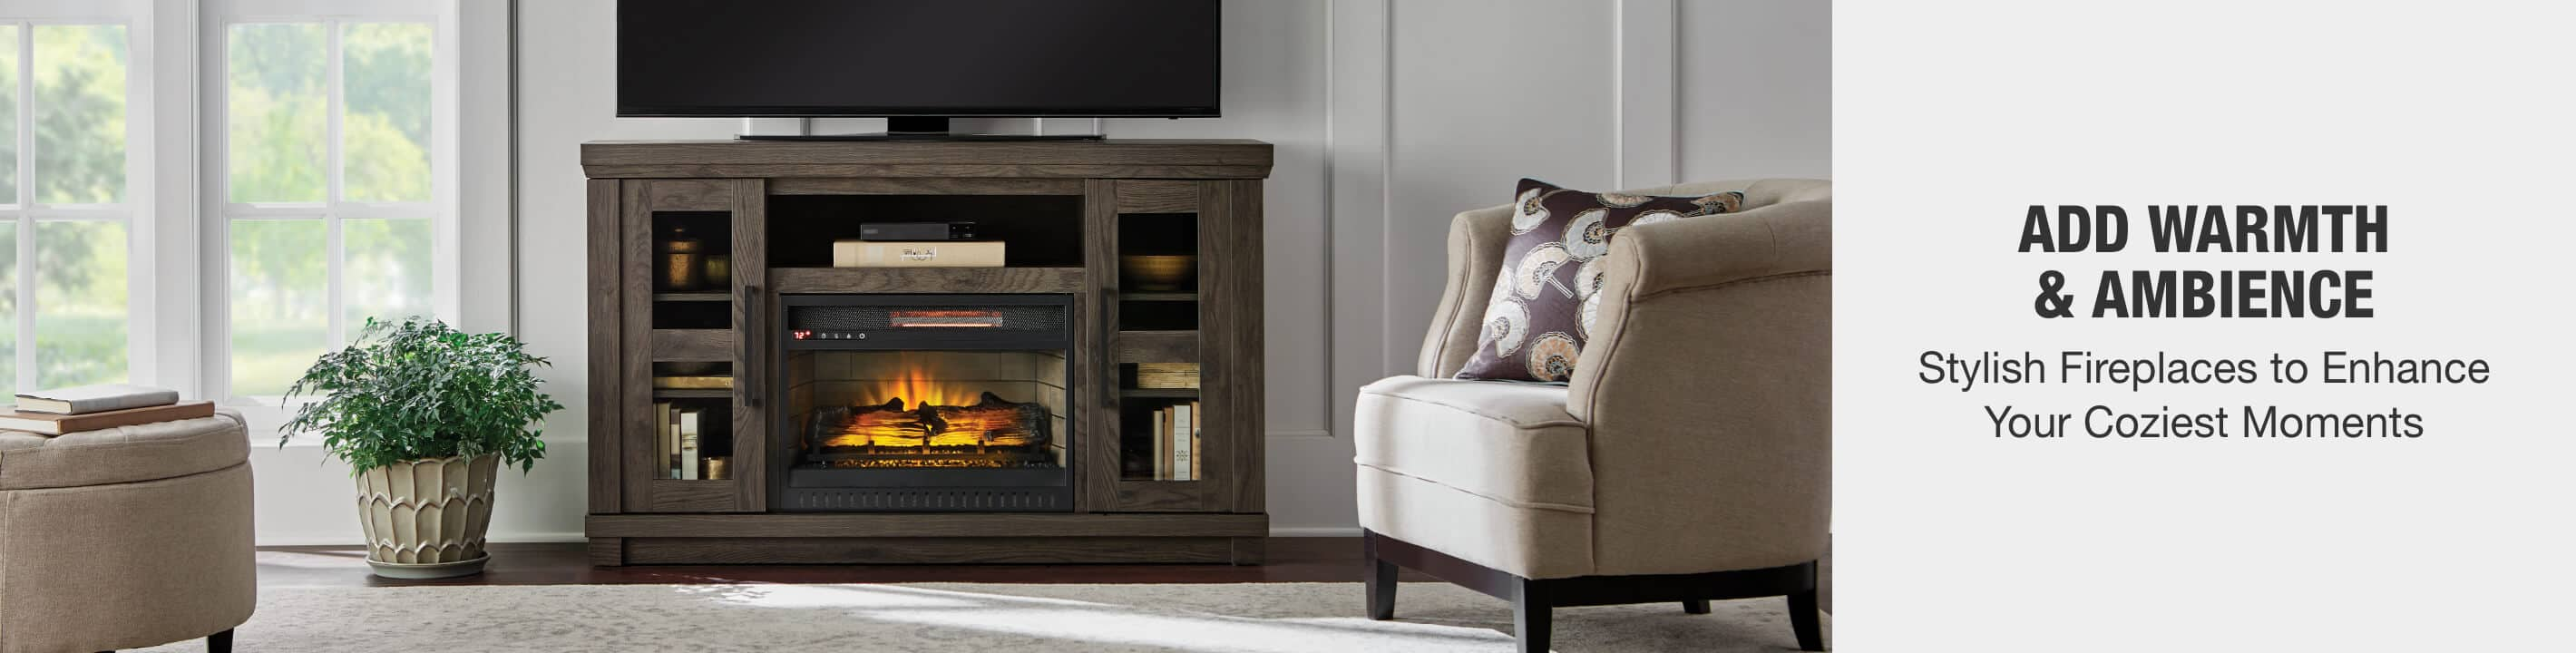 Add Warmth & Ambience - Stylish Fireplaces to Enhance Your Coziest Moments